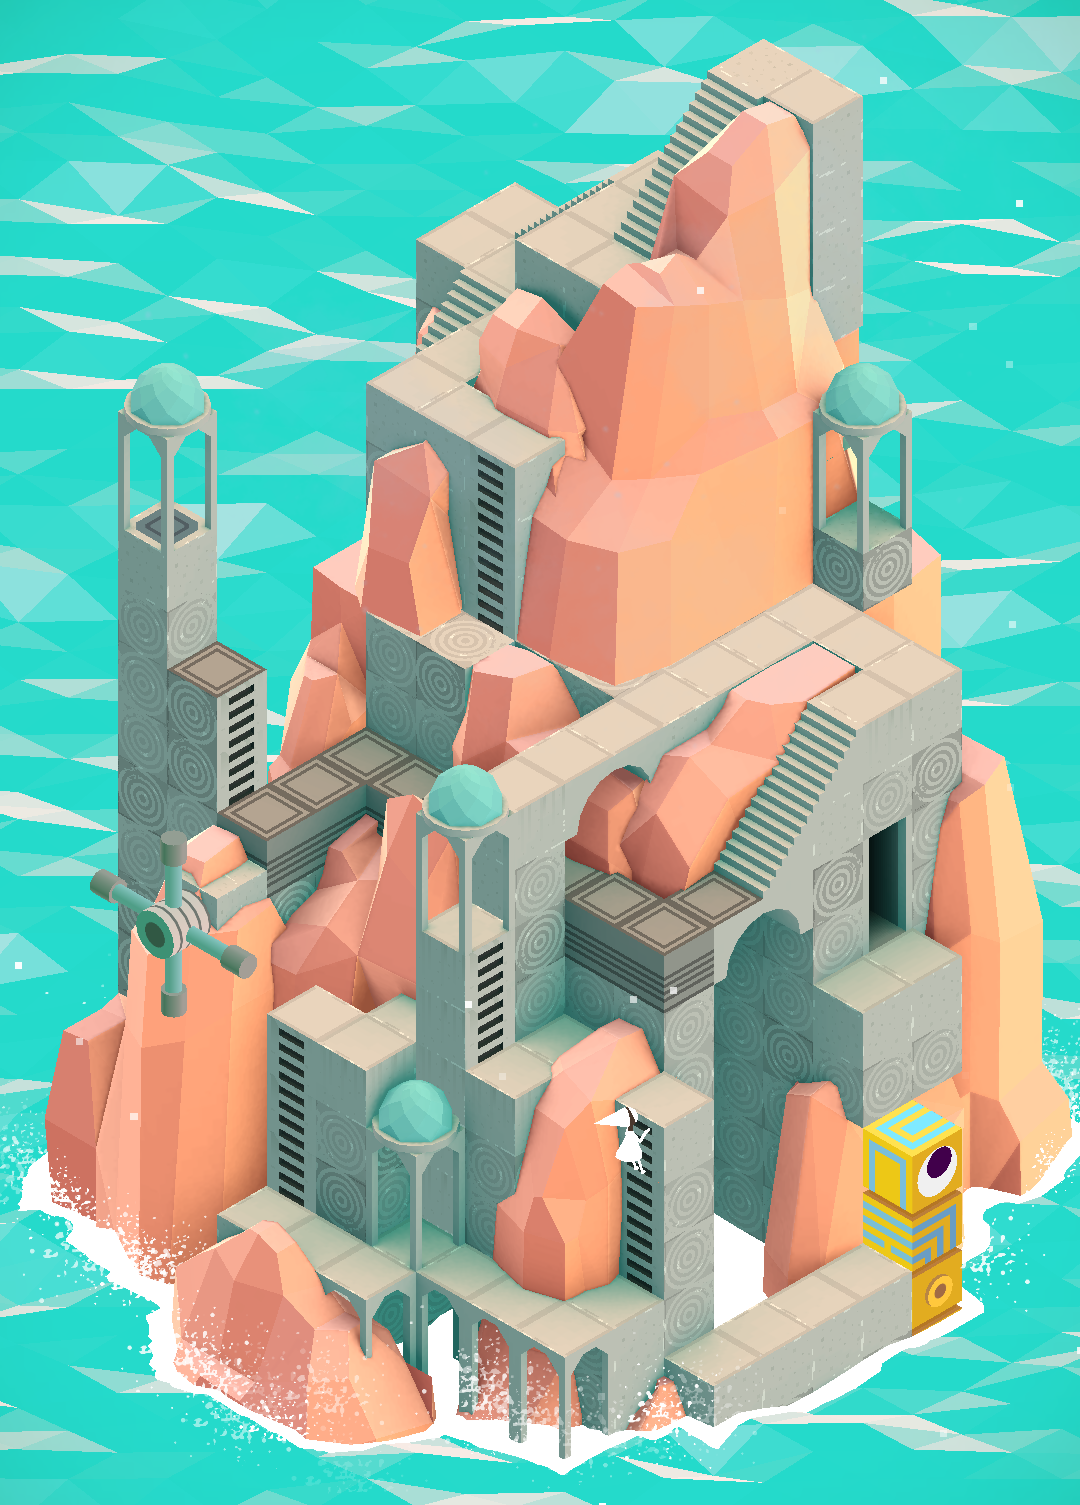 Isometric / flat perspective, cell shading, bright colors, low-poly